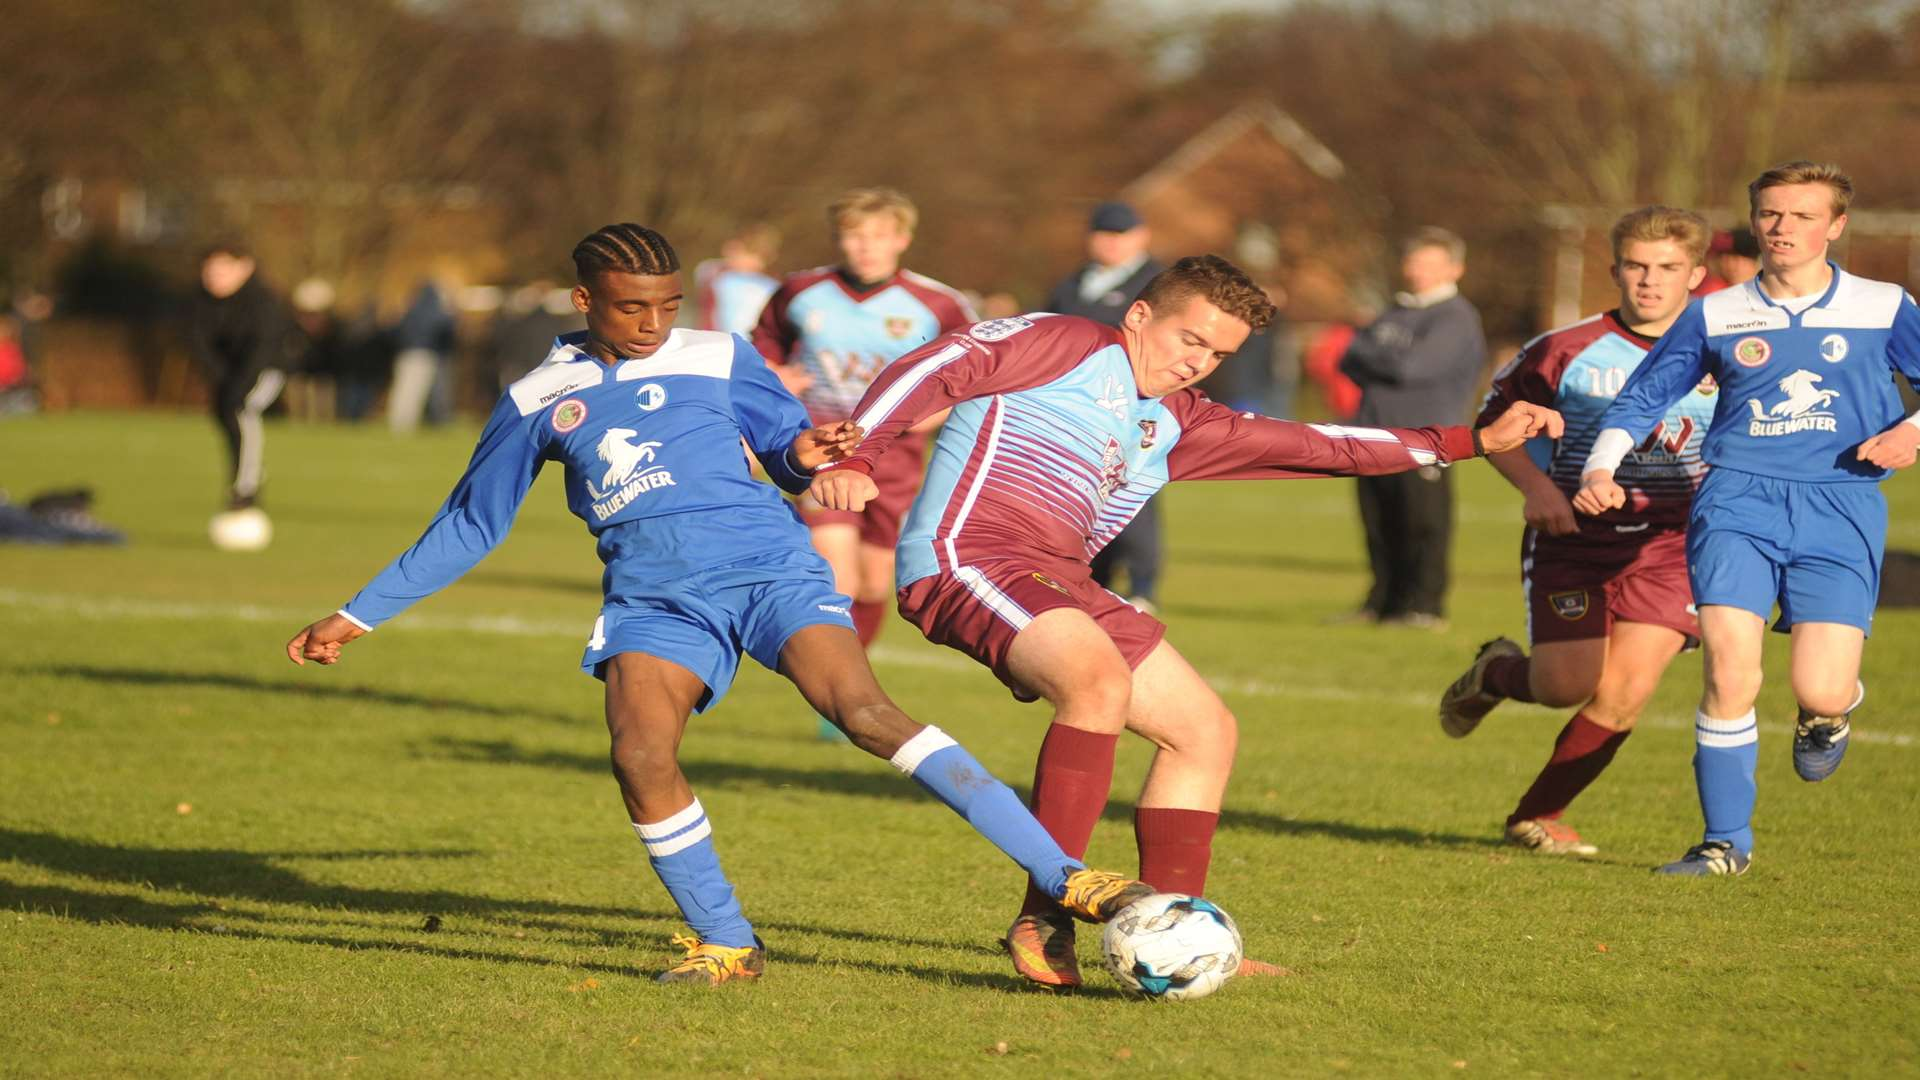 KFU Woodpecker and Wigmore Youth Wanderers go head-to-head in Under-18 Division 2 Picture: Steve Crispe